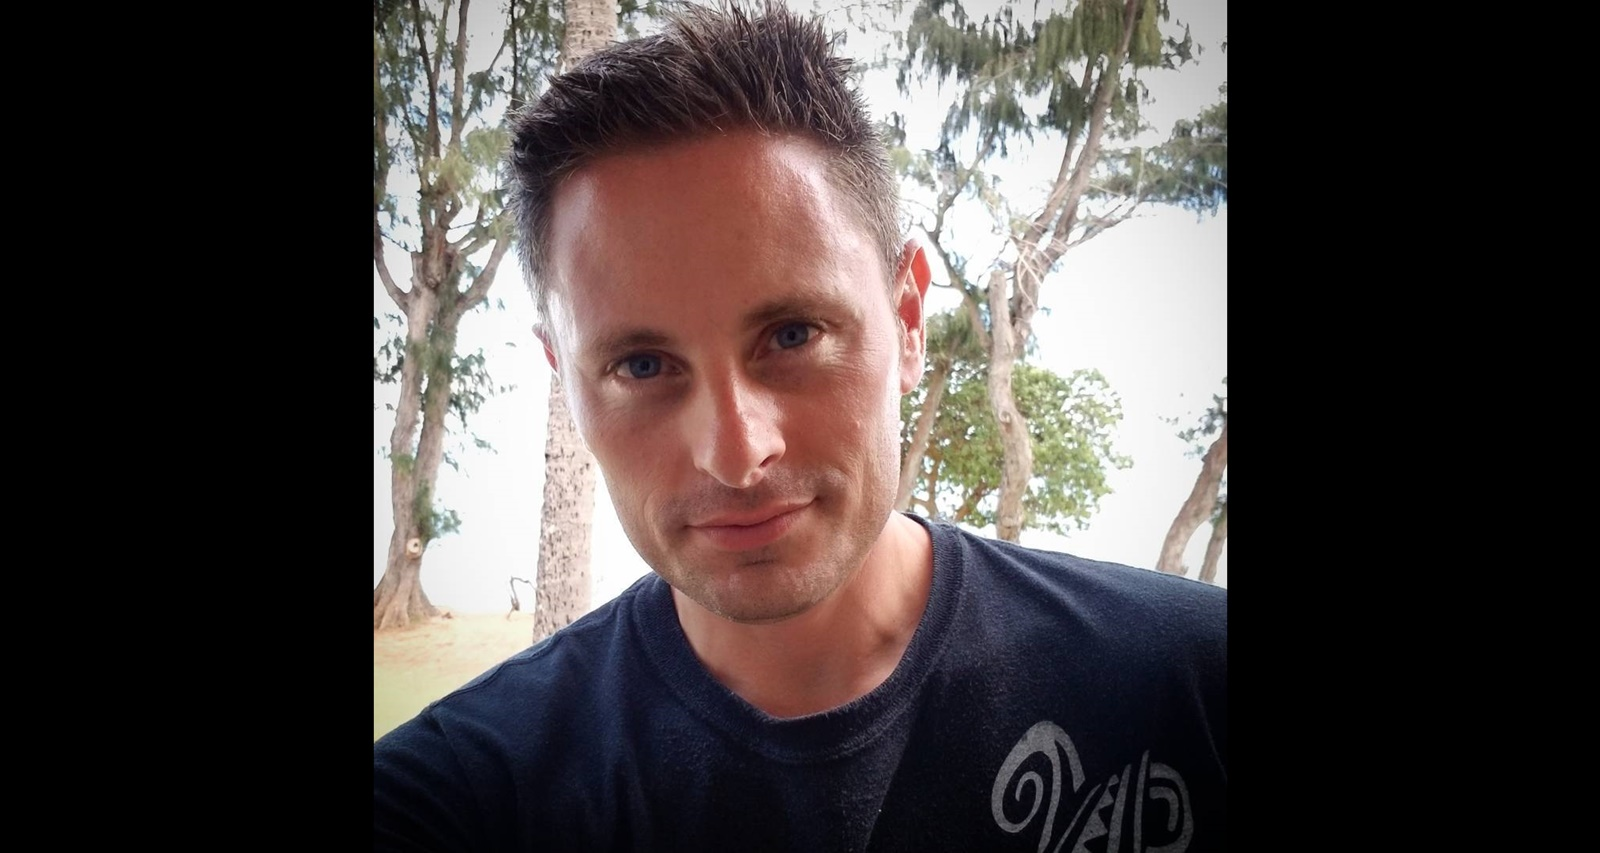 """Grant Thompson Wiki, Everything You Need To Know About The Dead YouTuber """"King Of Random"""" Who Died in a Paragliding Accident"""